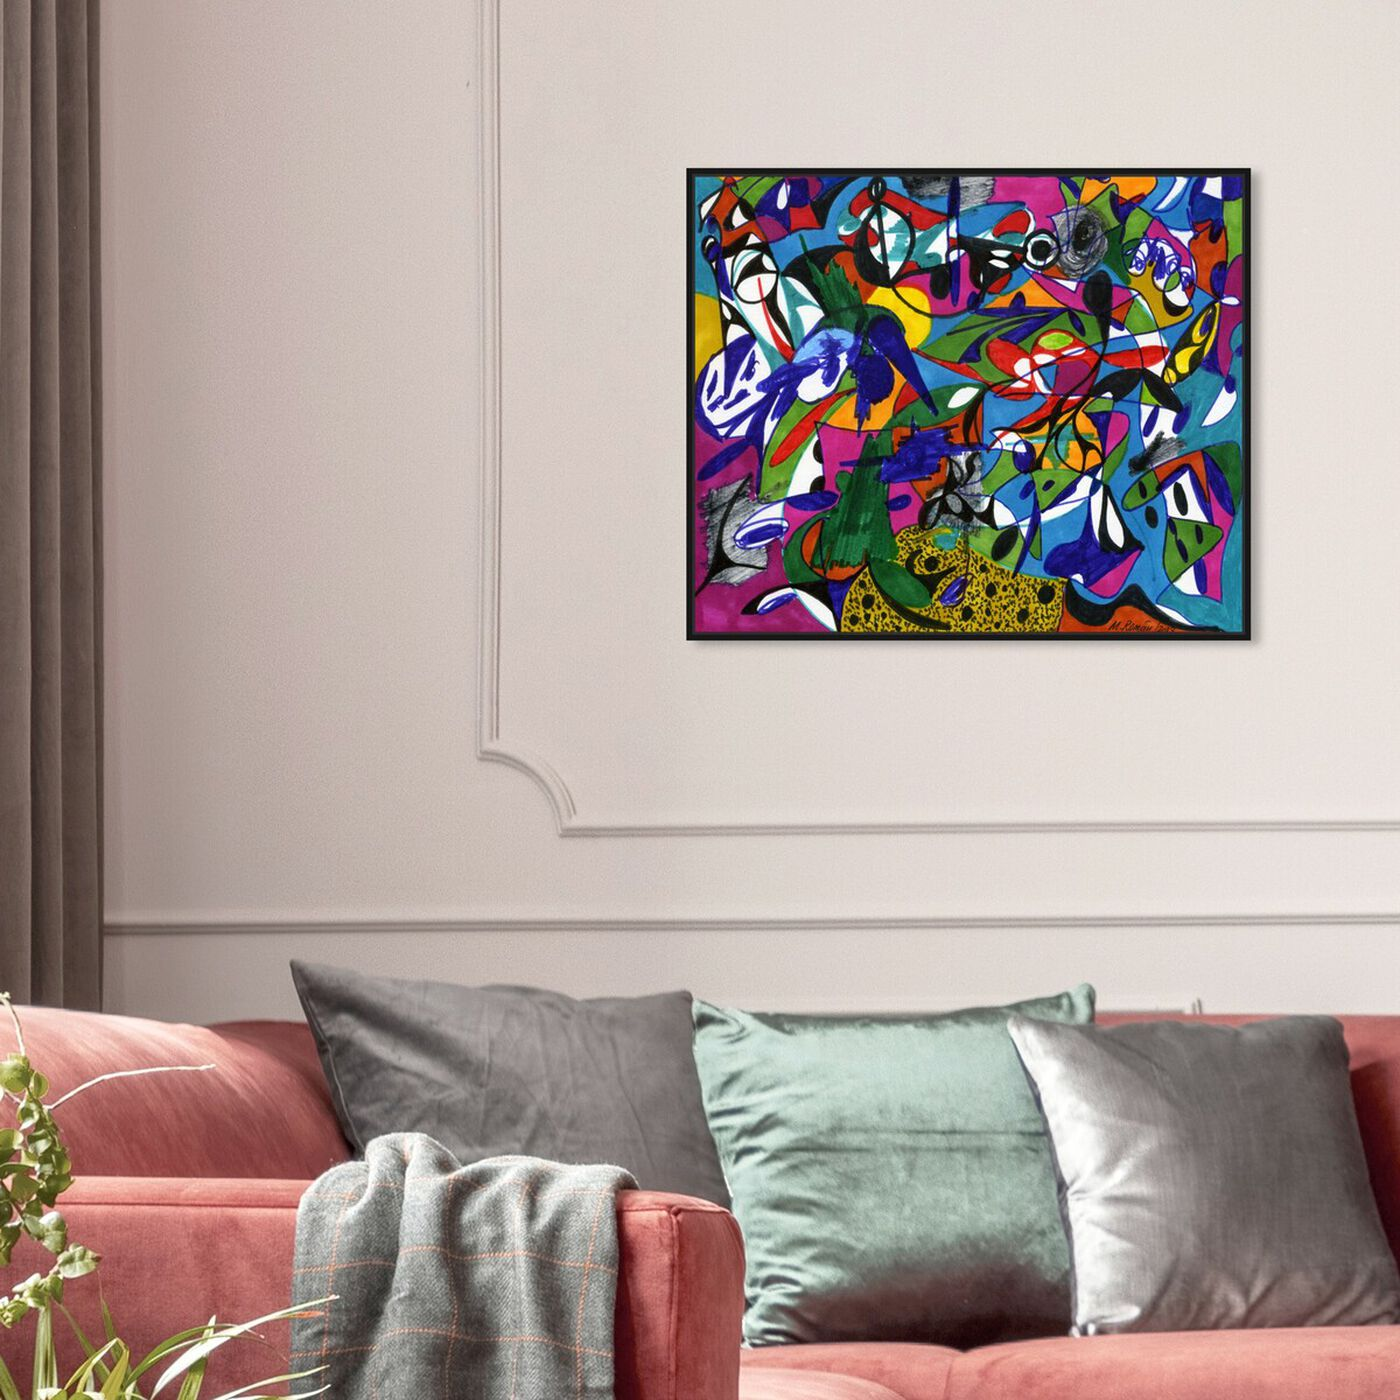 Hanging view of Cacophony featuring abstract and shapes art.